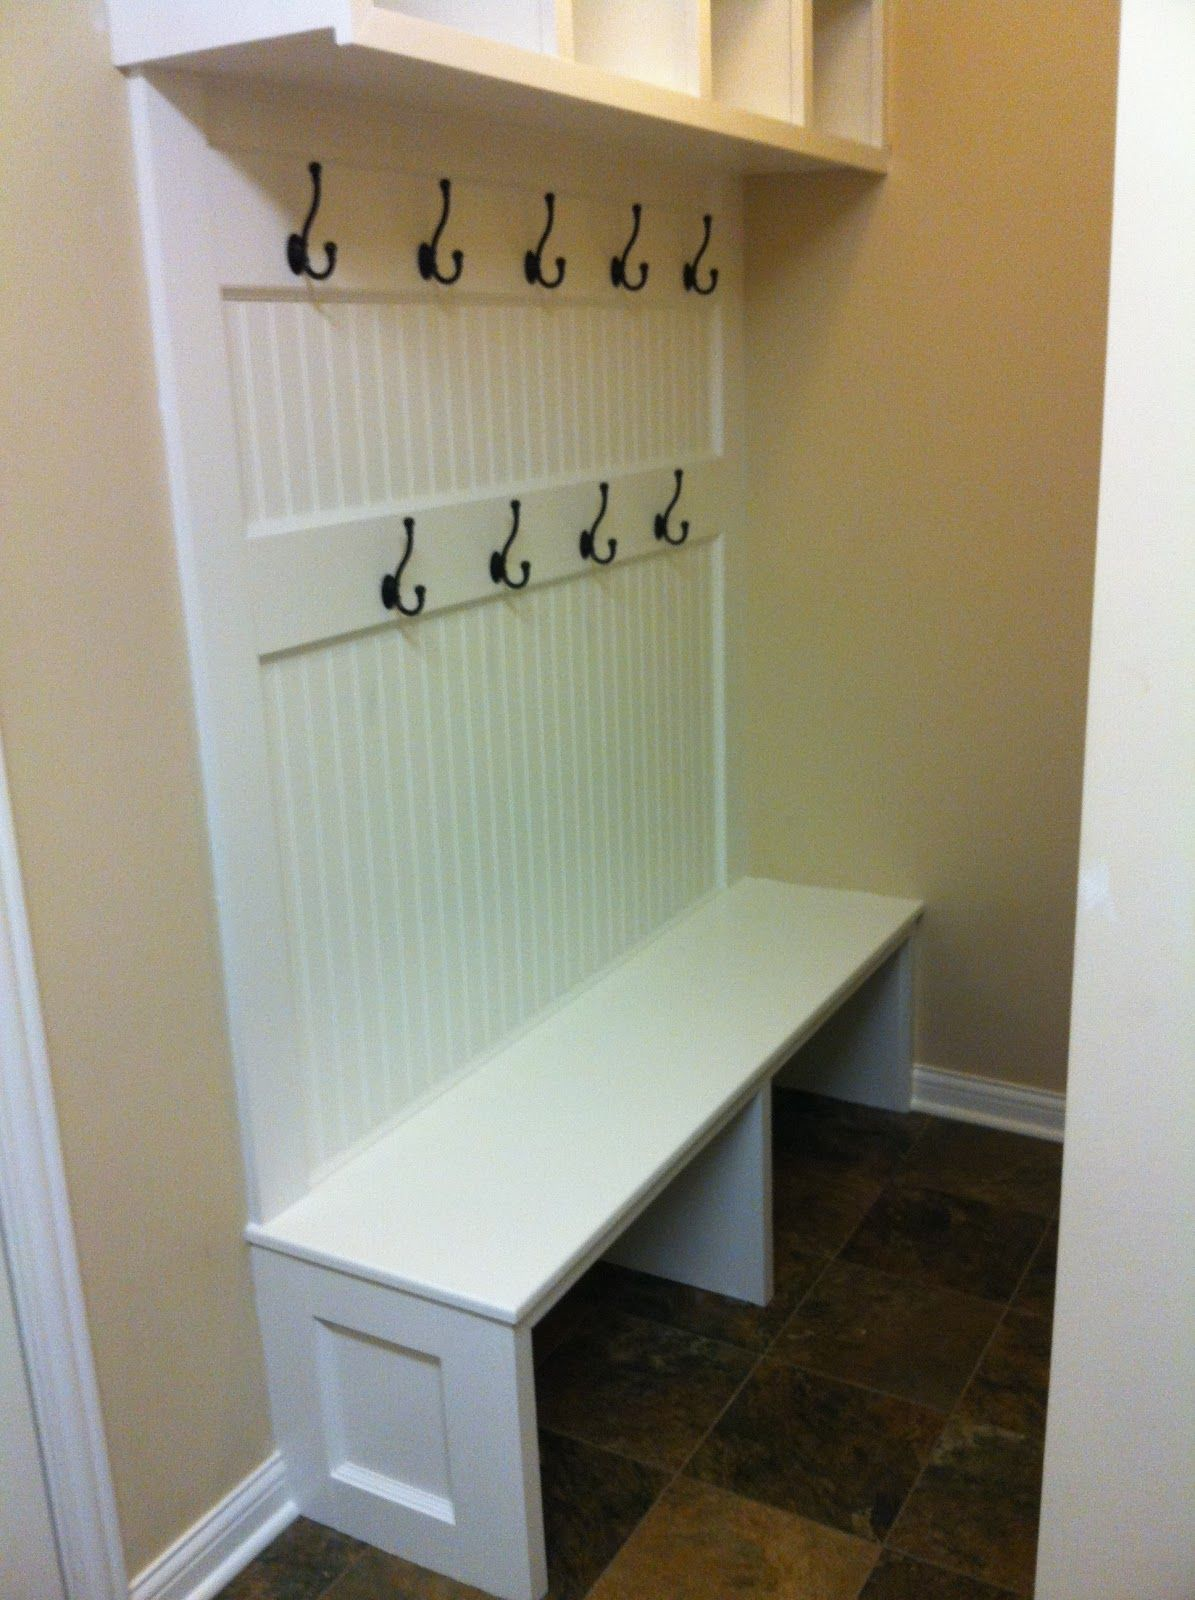 Wonderful function of mudroom bench simple mudroom bench for Mudroom bench depth